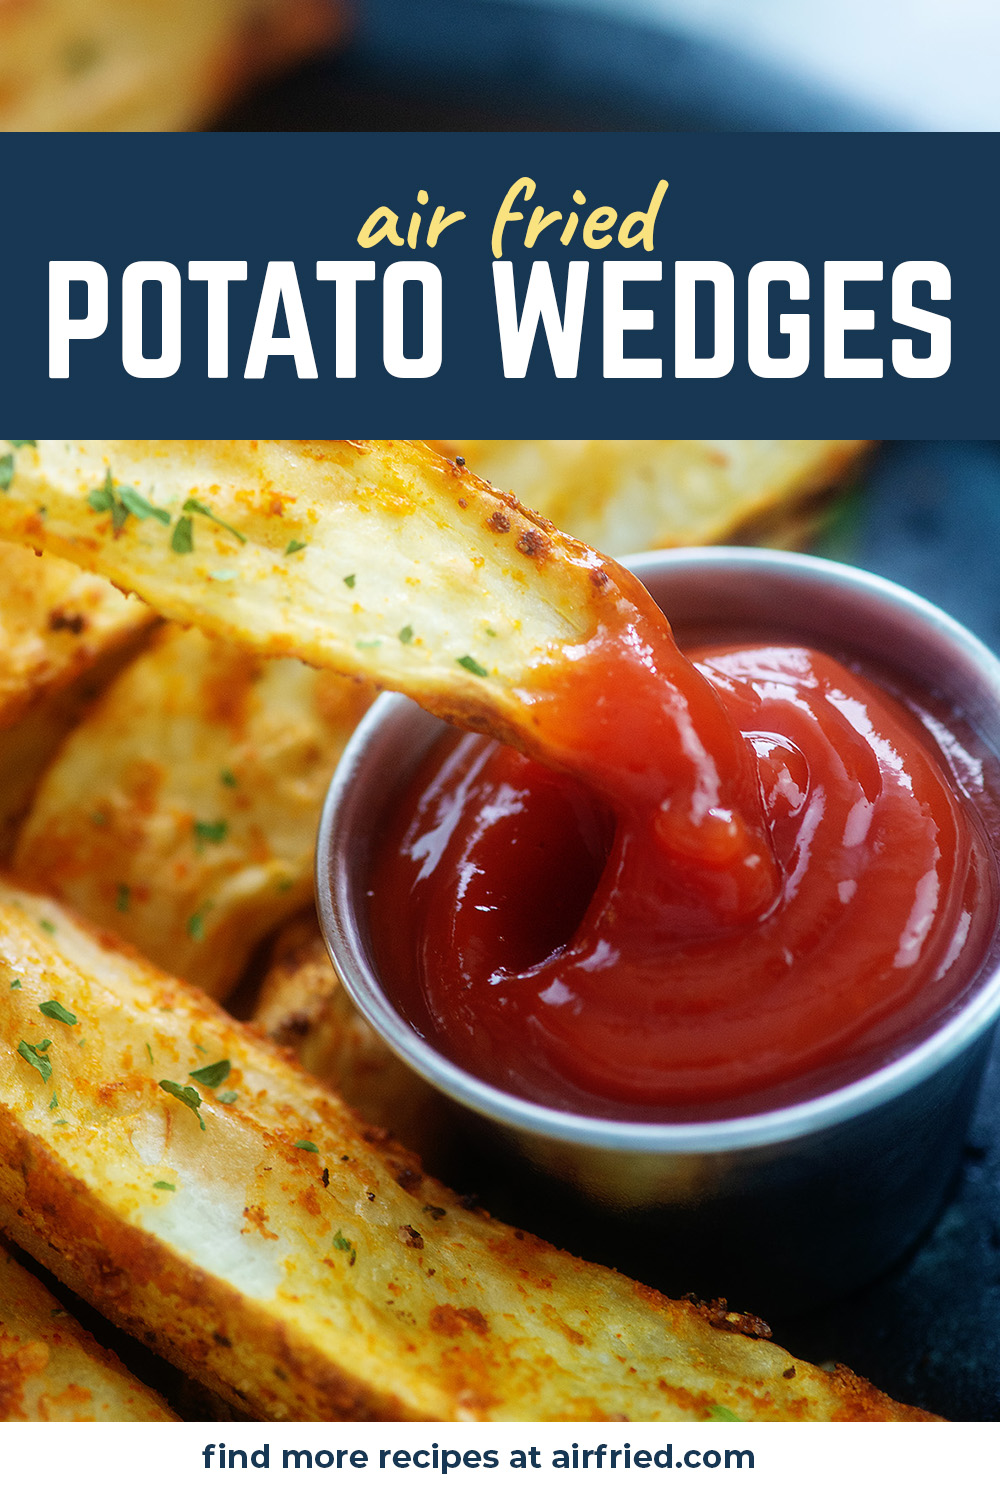 These potato wedges were air fried to give them a crispy outside with a super soft center! #airfryer #recipes #potatoes